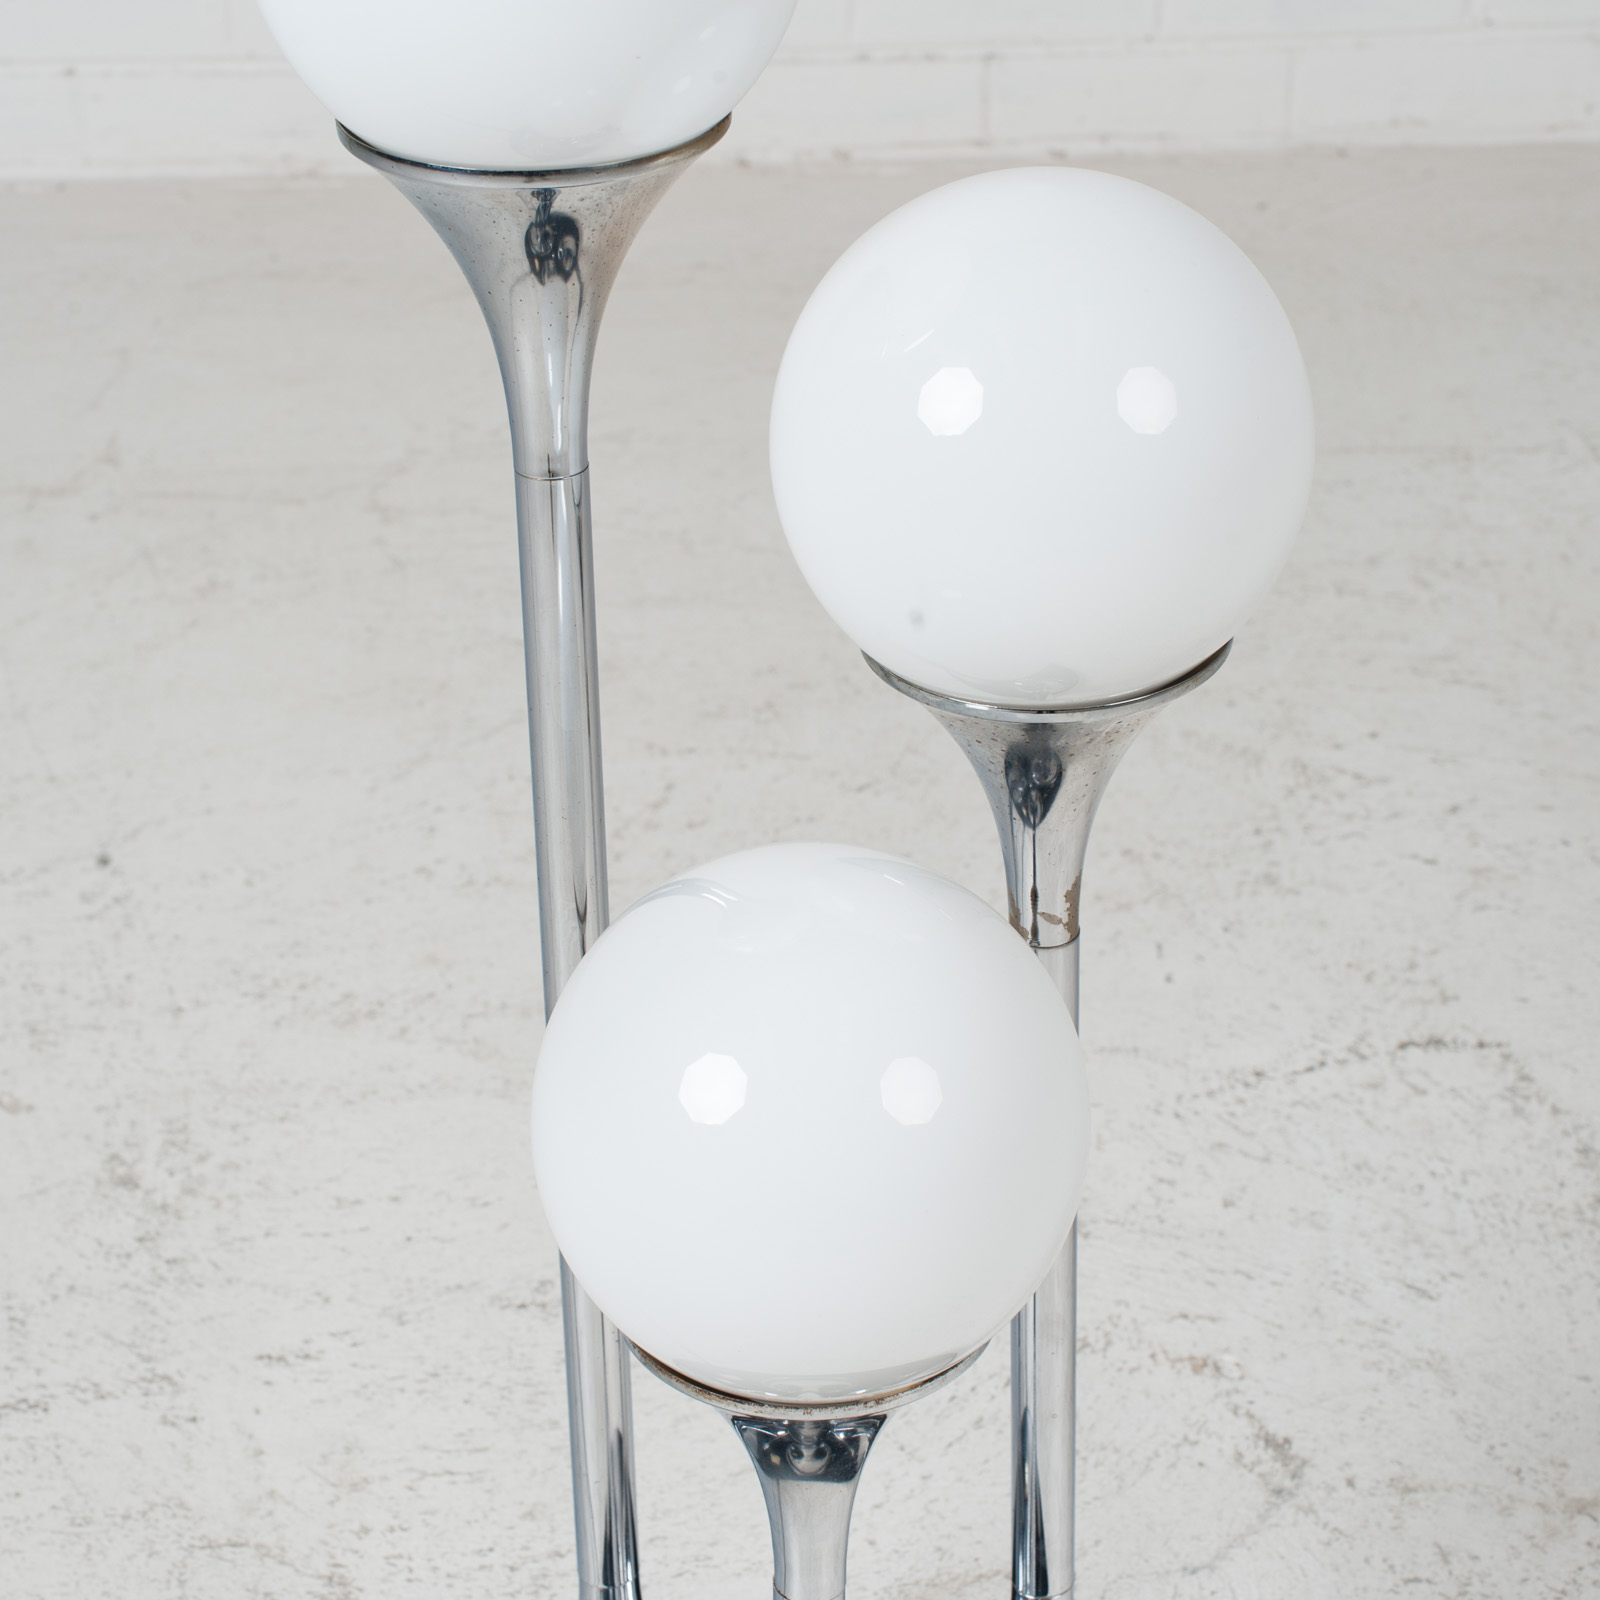 Chrome Floor Lamp By Targetti Sankey 1960s Italy 05